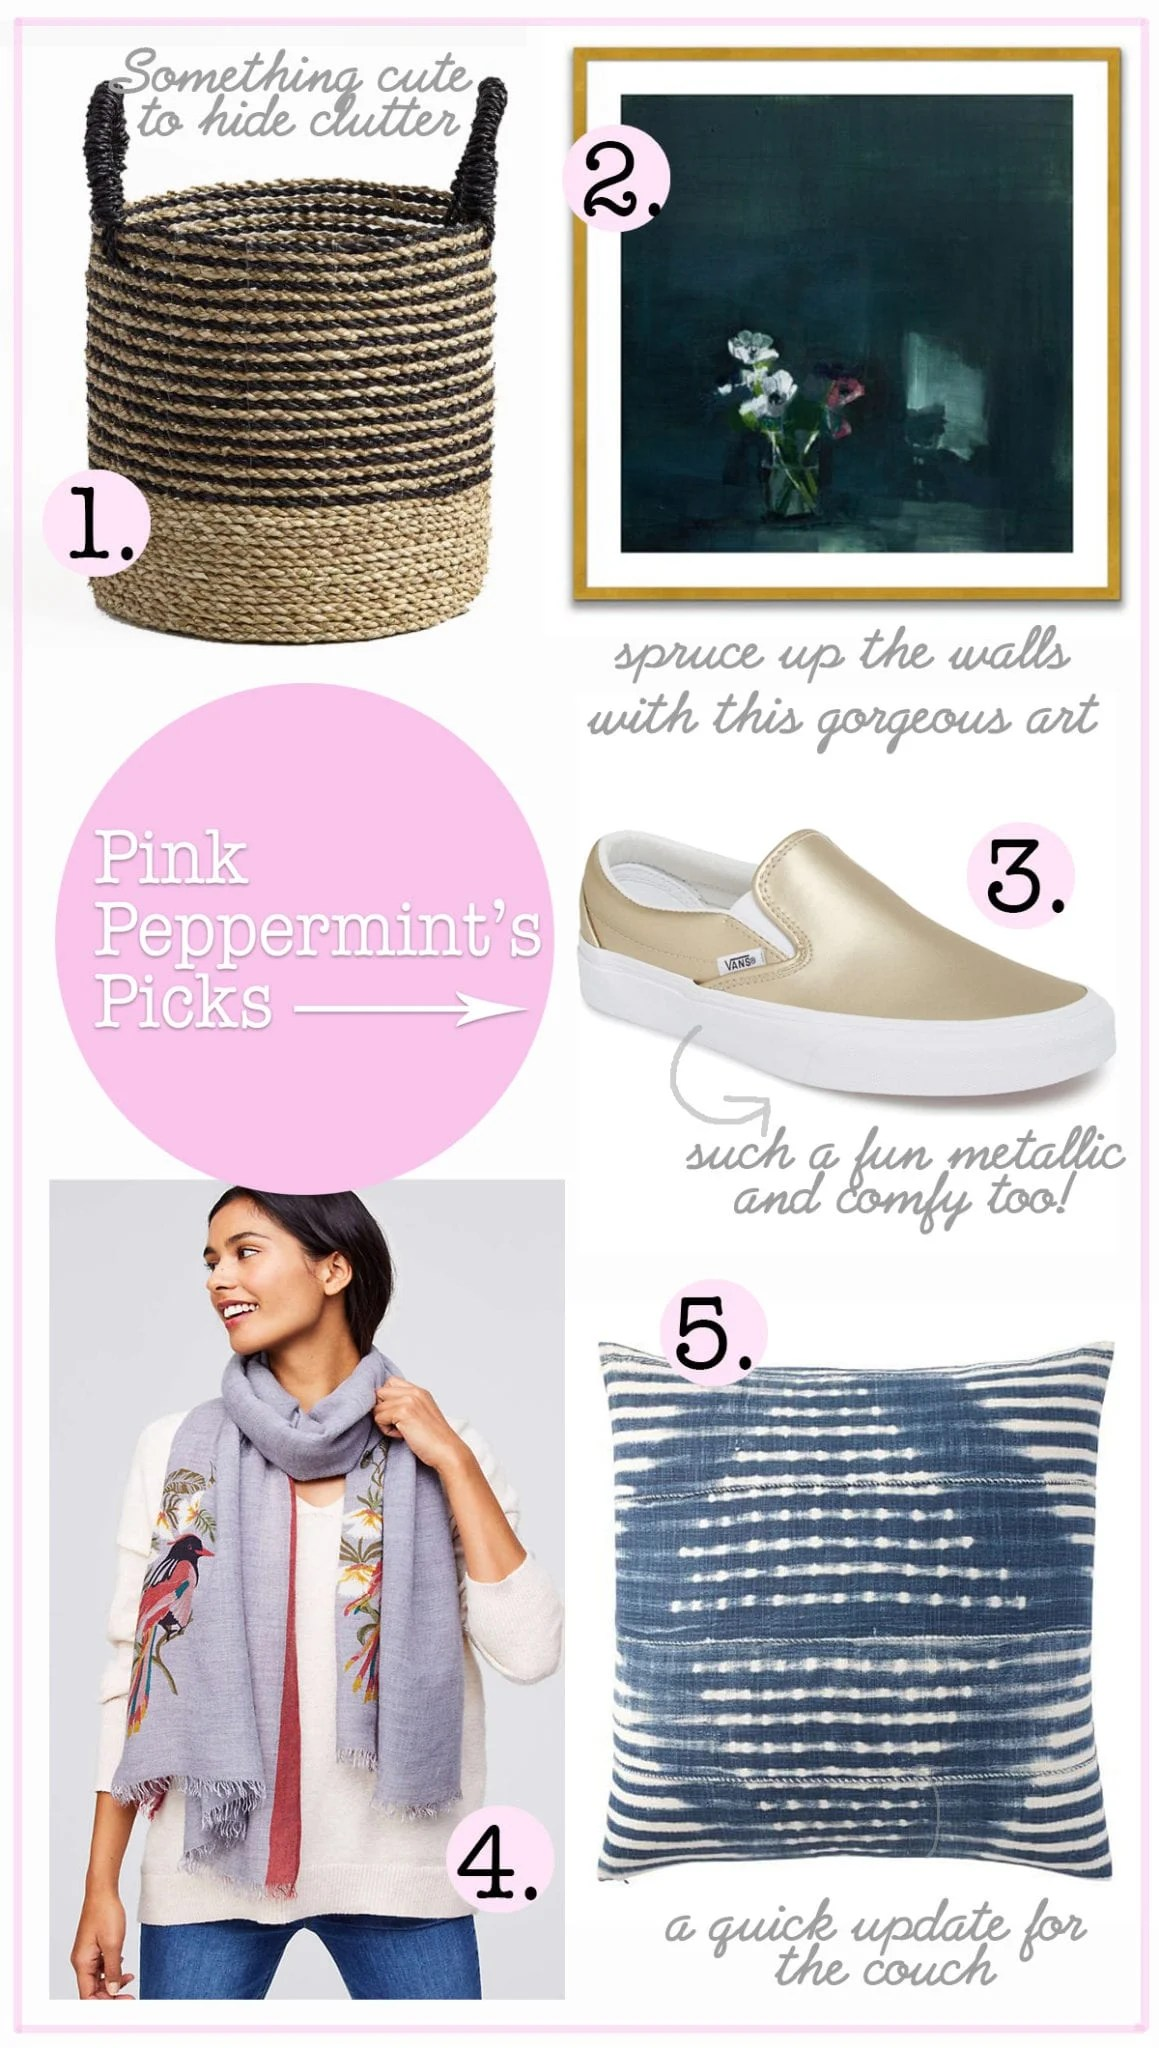 pink peppermint's picks